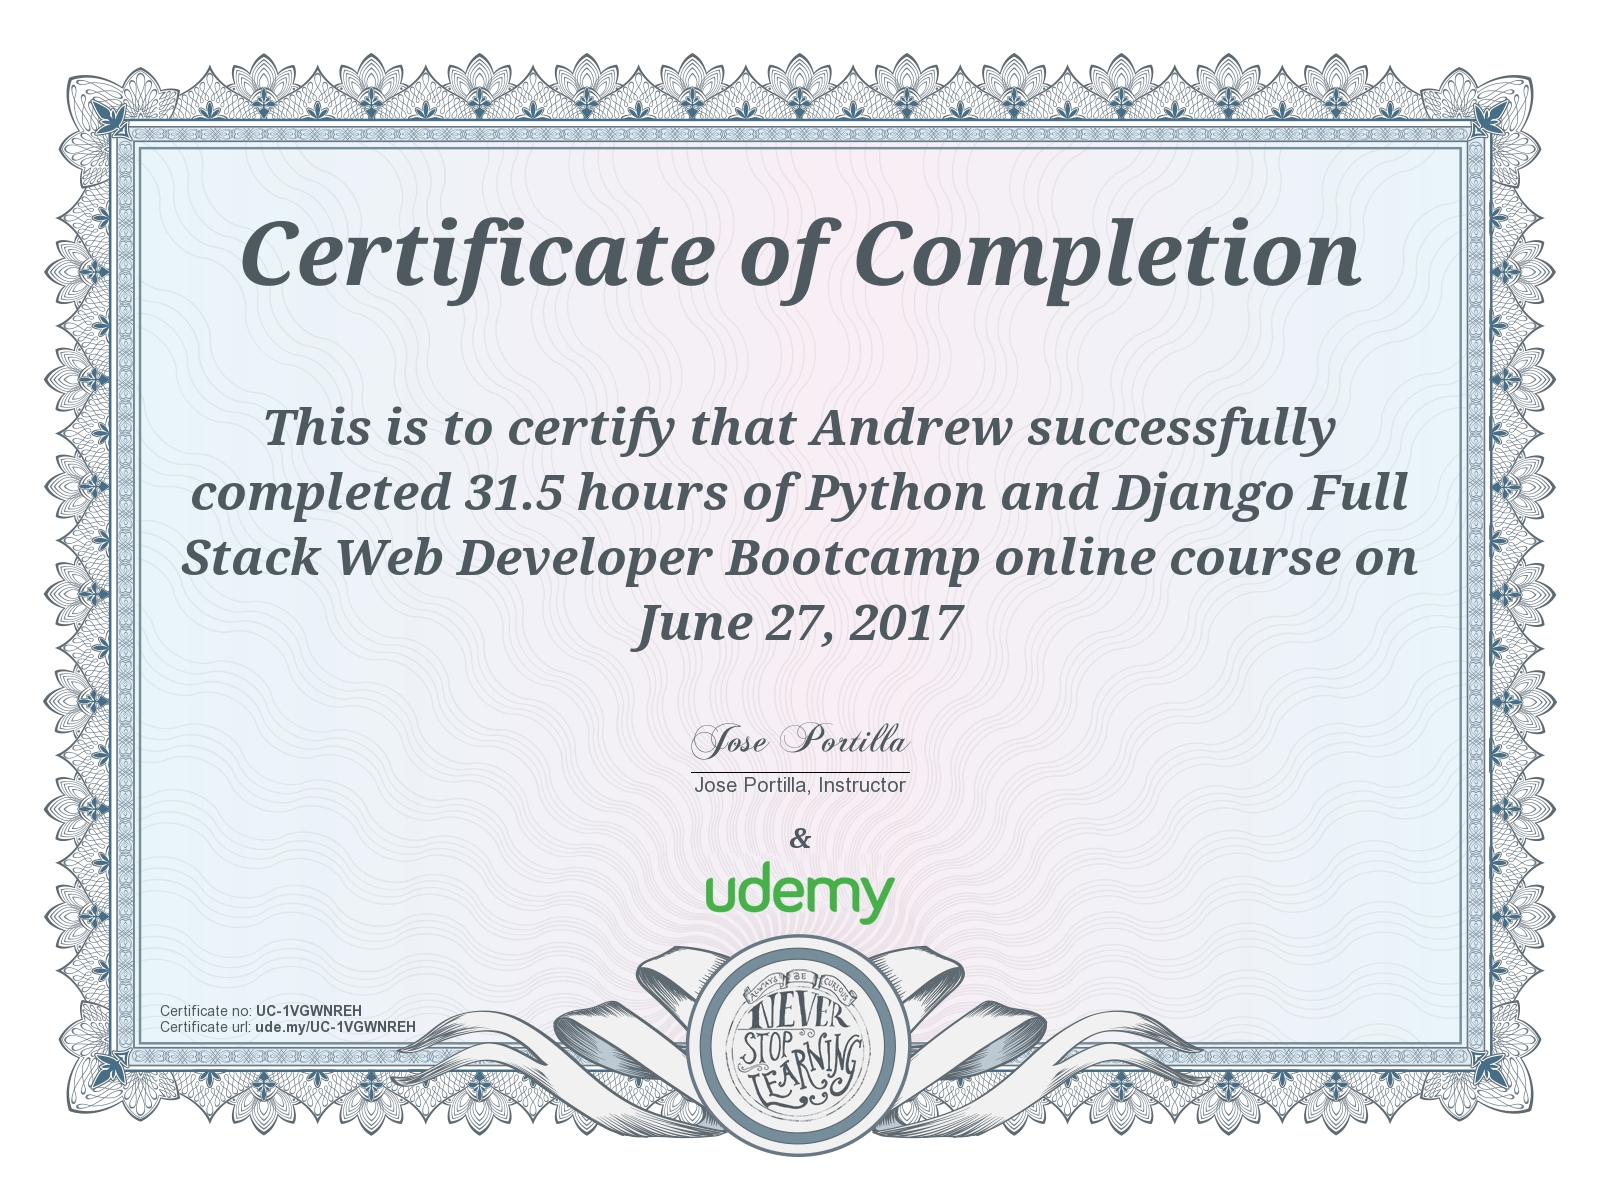 Python and Django Full Stack Web Developer Bootcamp Award